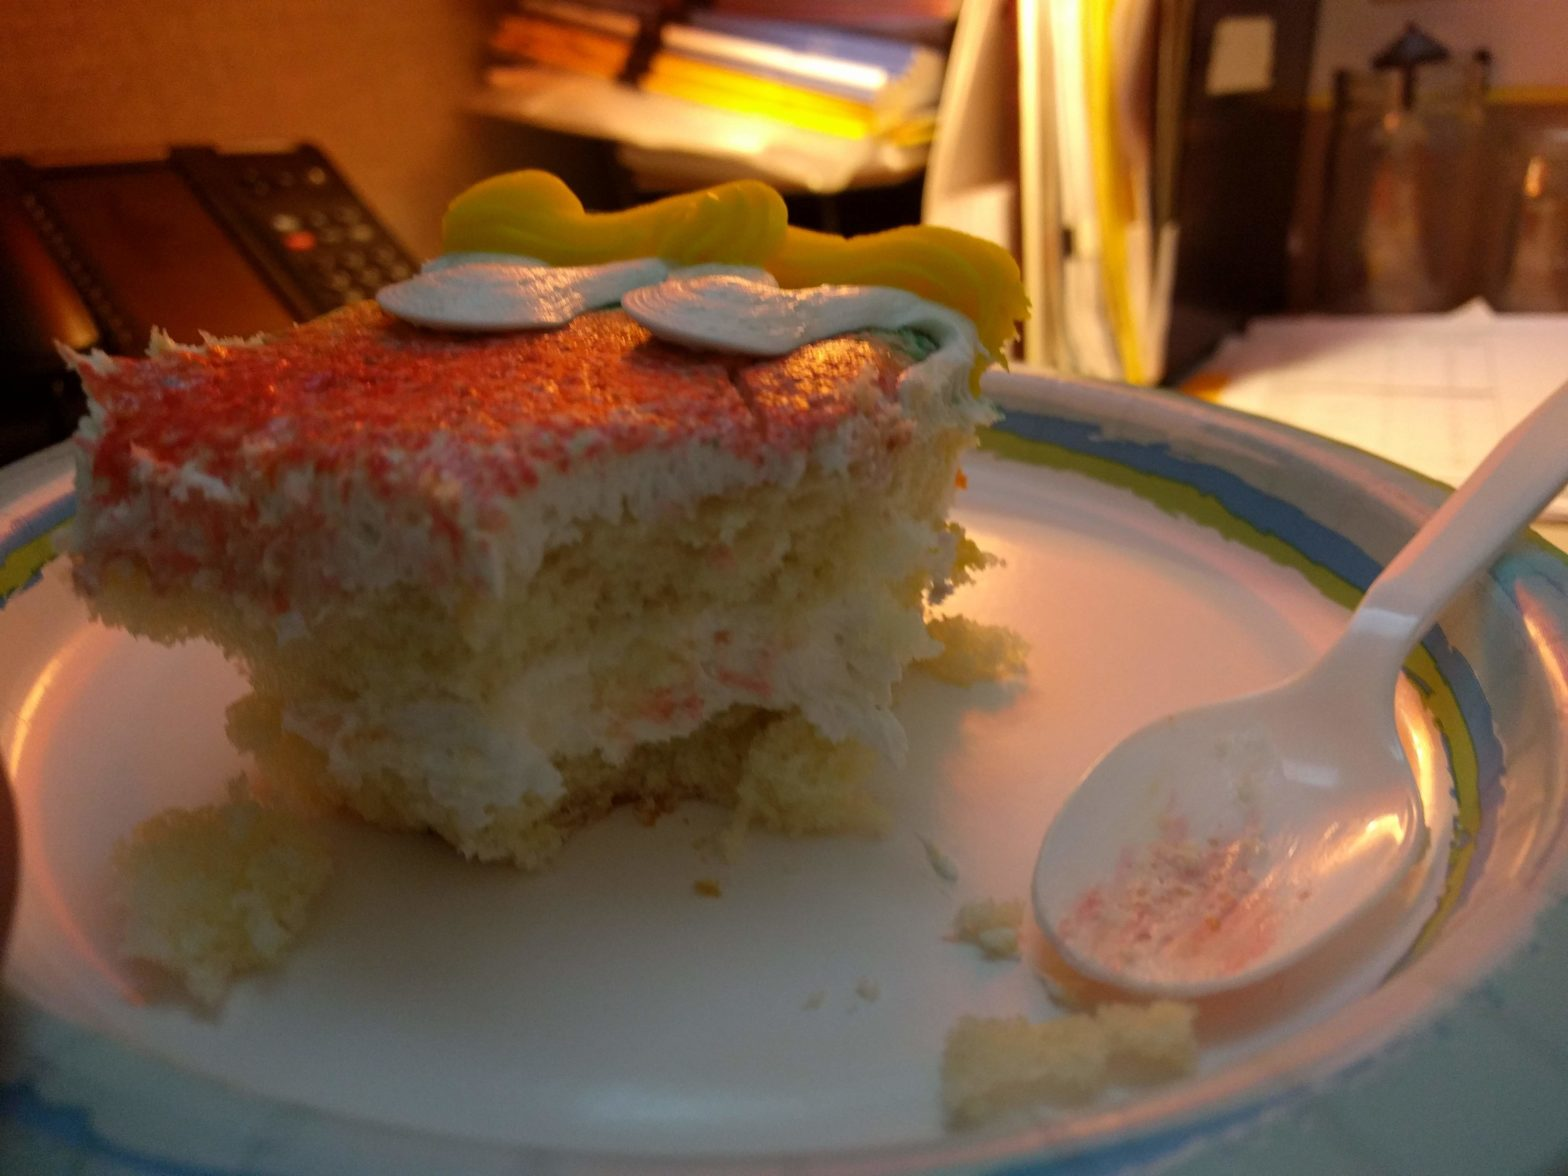 slice of cake on paper plate